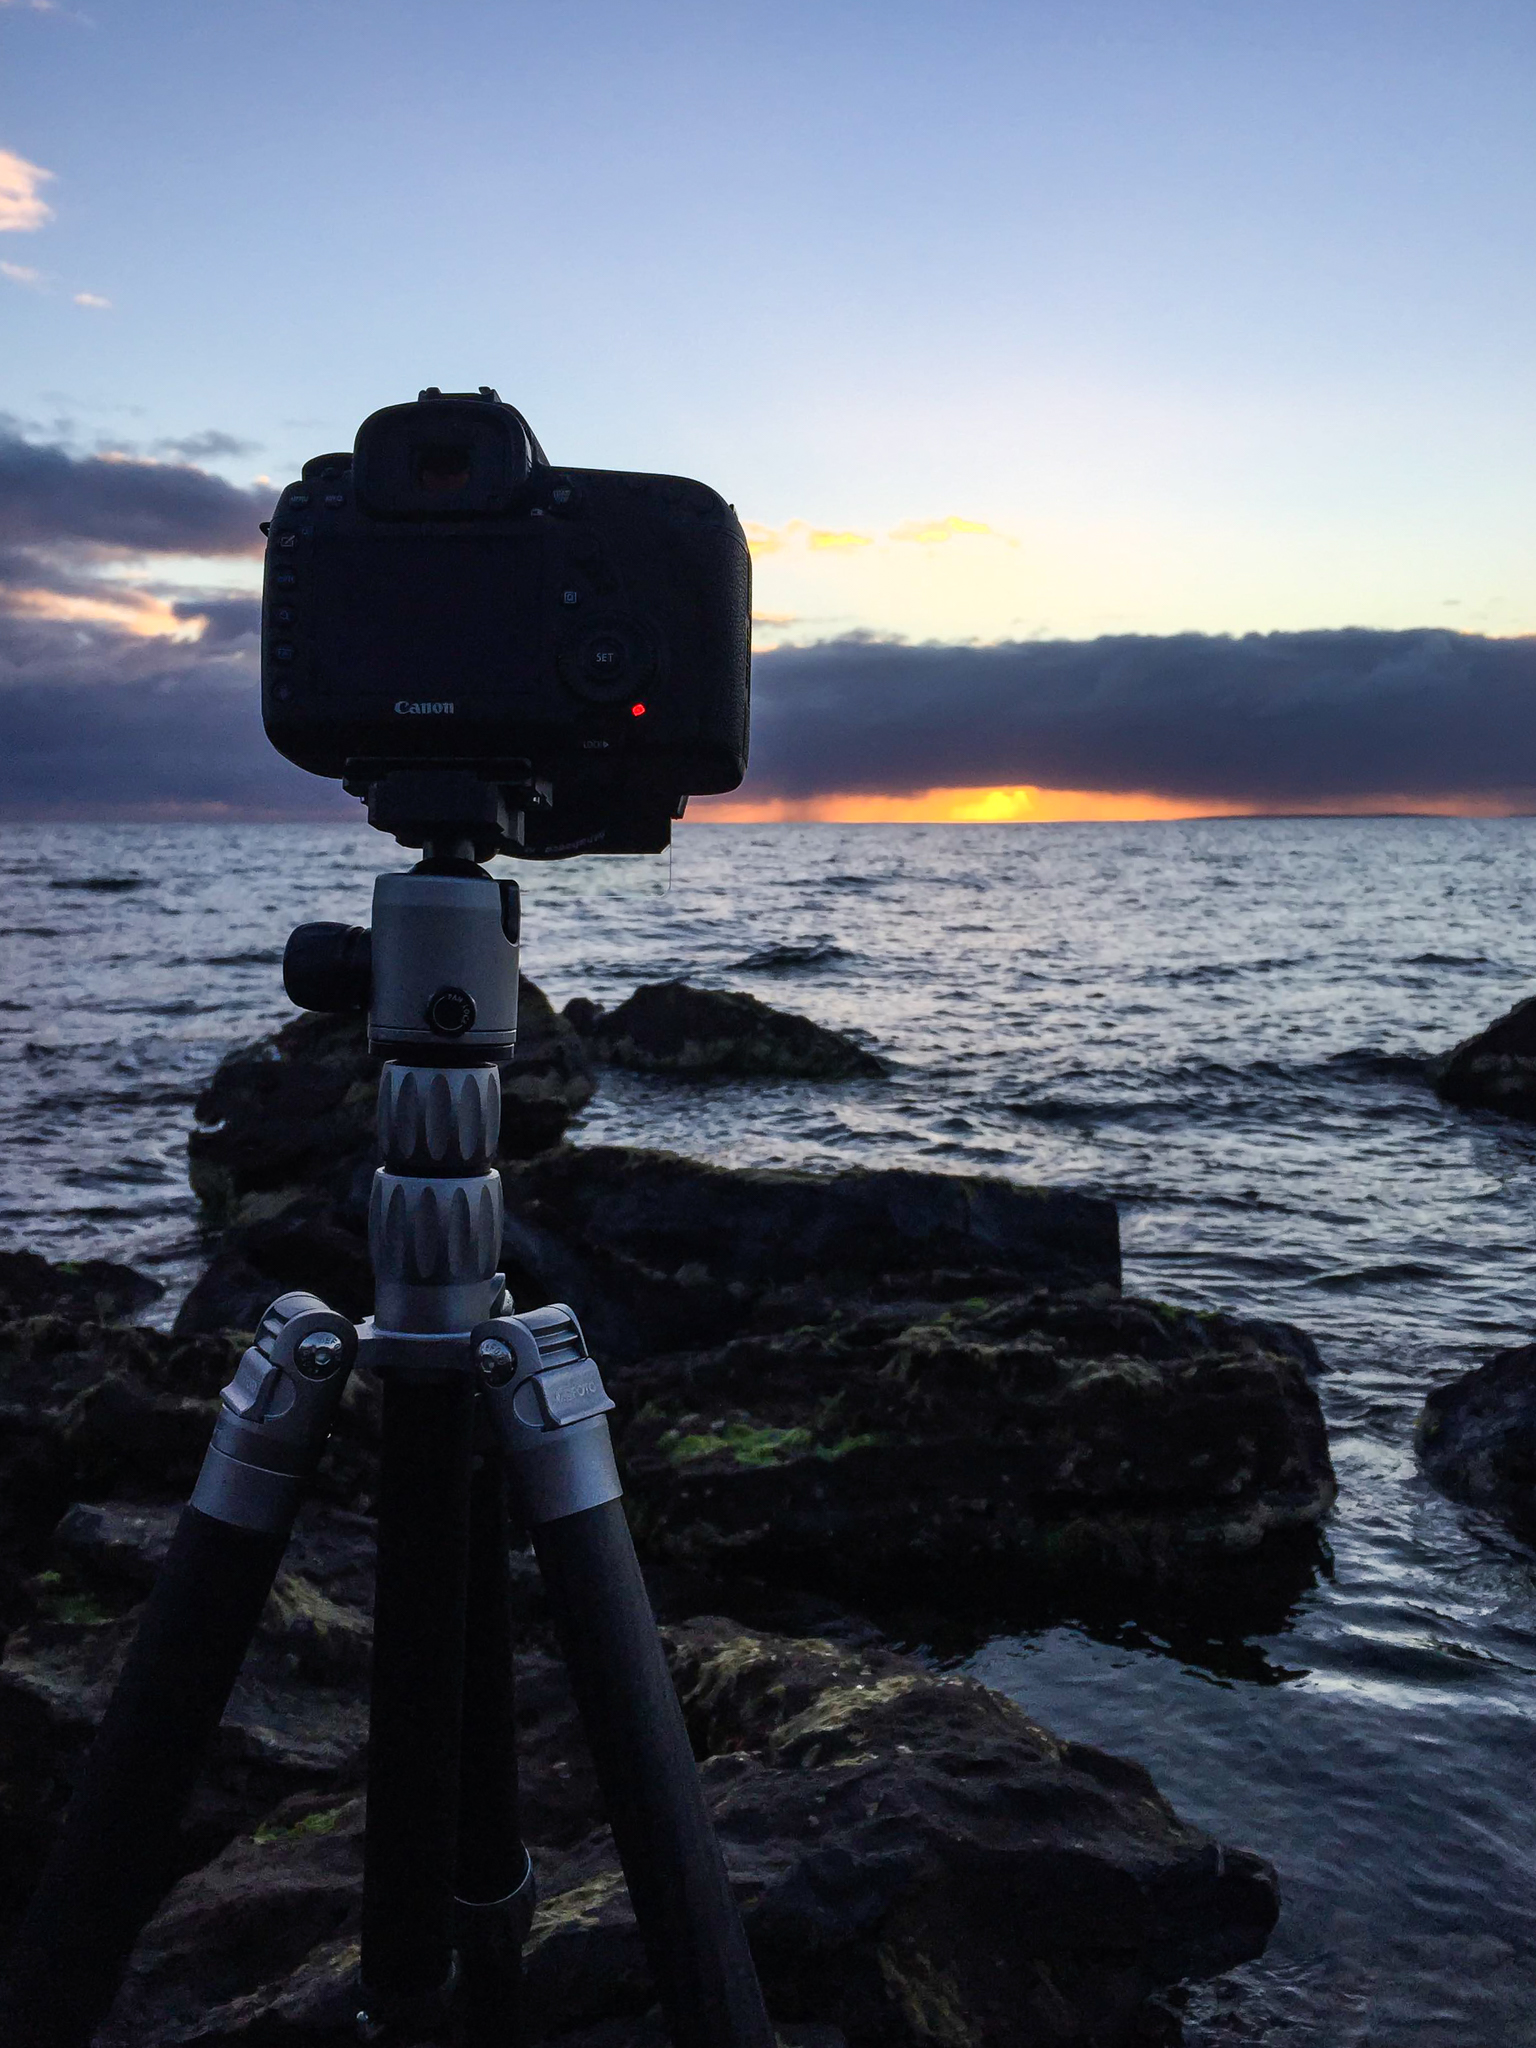 Mornington sunset that didn't give much but tested the stability of the Globetrotter S CF on the rocky shoreline.